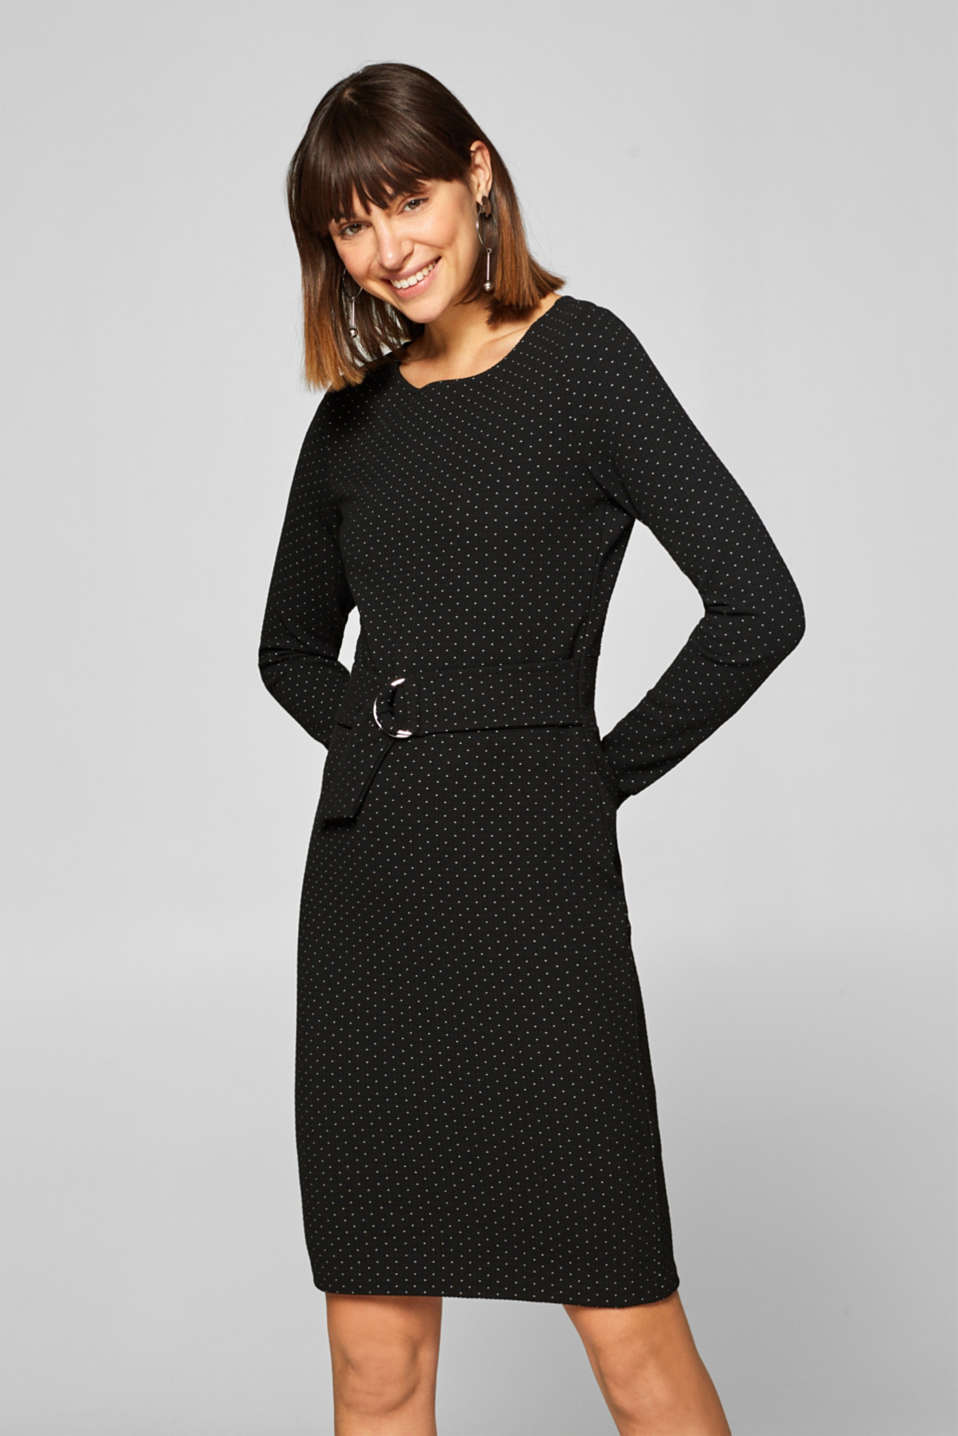 Esprit - Textured jersey stretch dress with polka dots